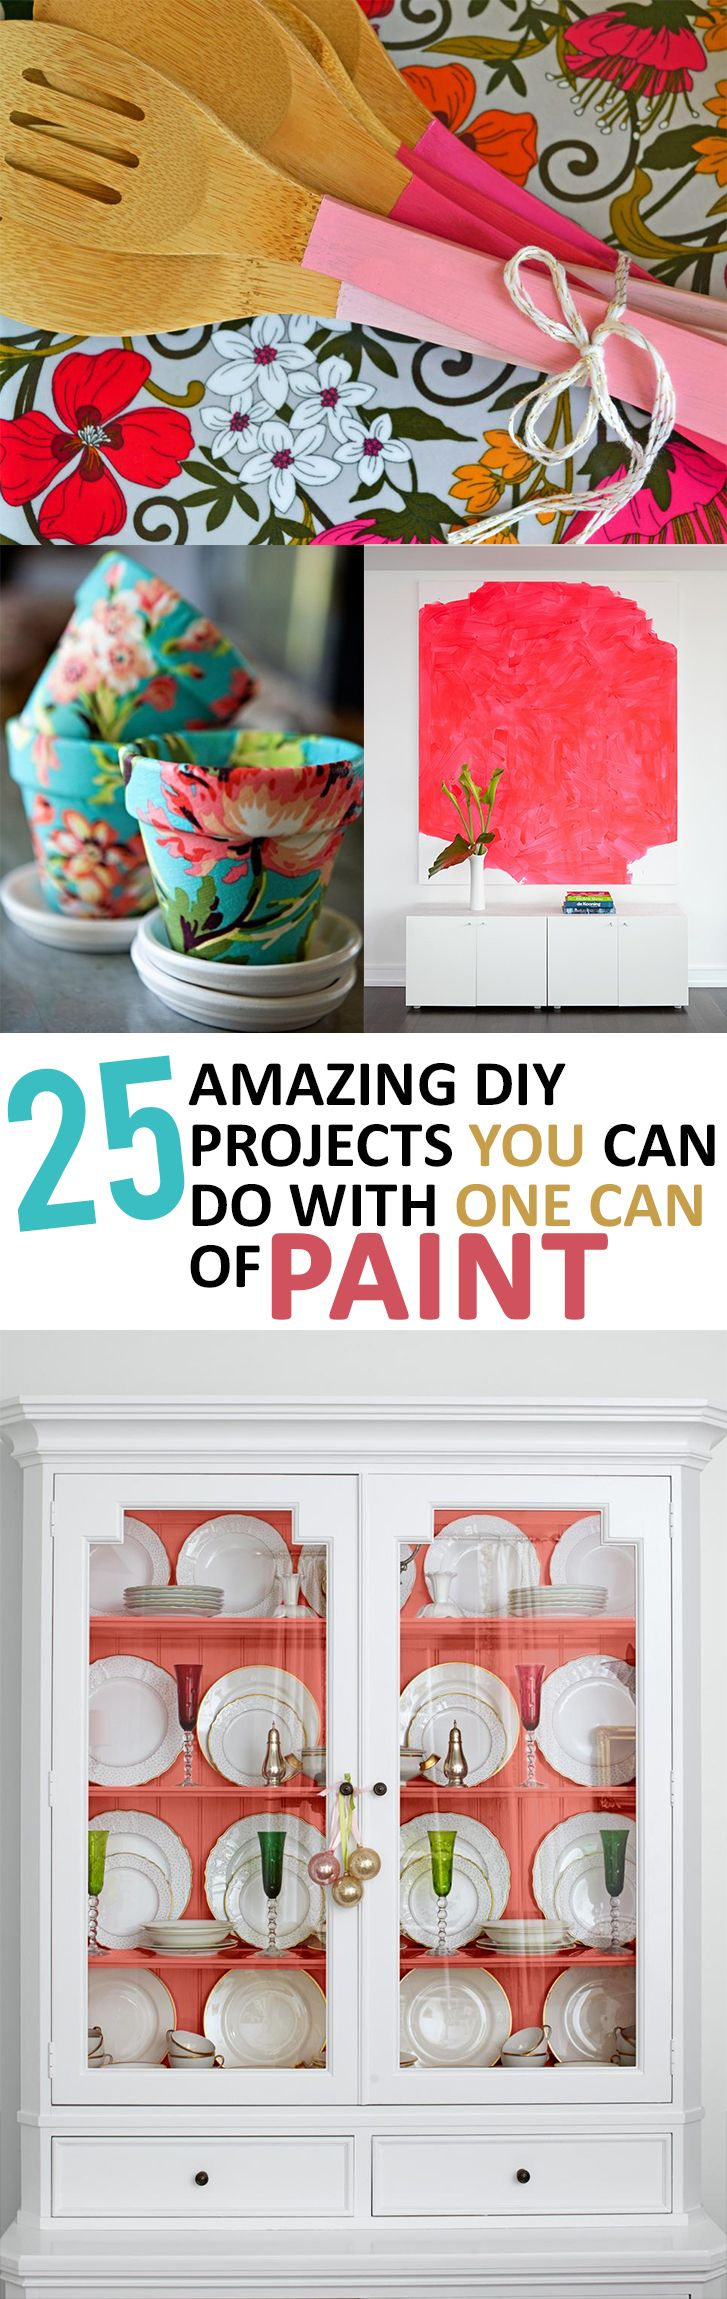 DIY projects, DIY paint projects, popular pin, home DIY, home projects, easy home decor, home decor ideas, DIY.